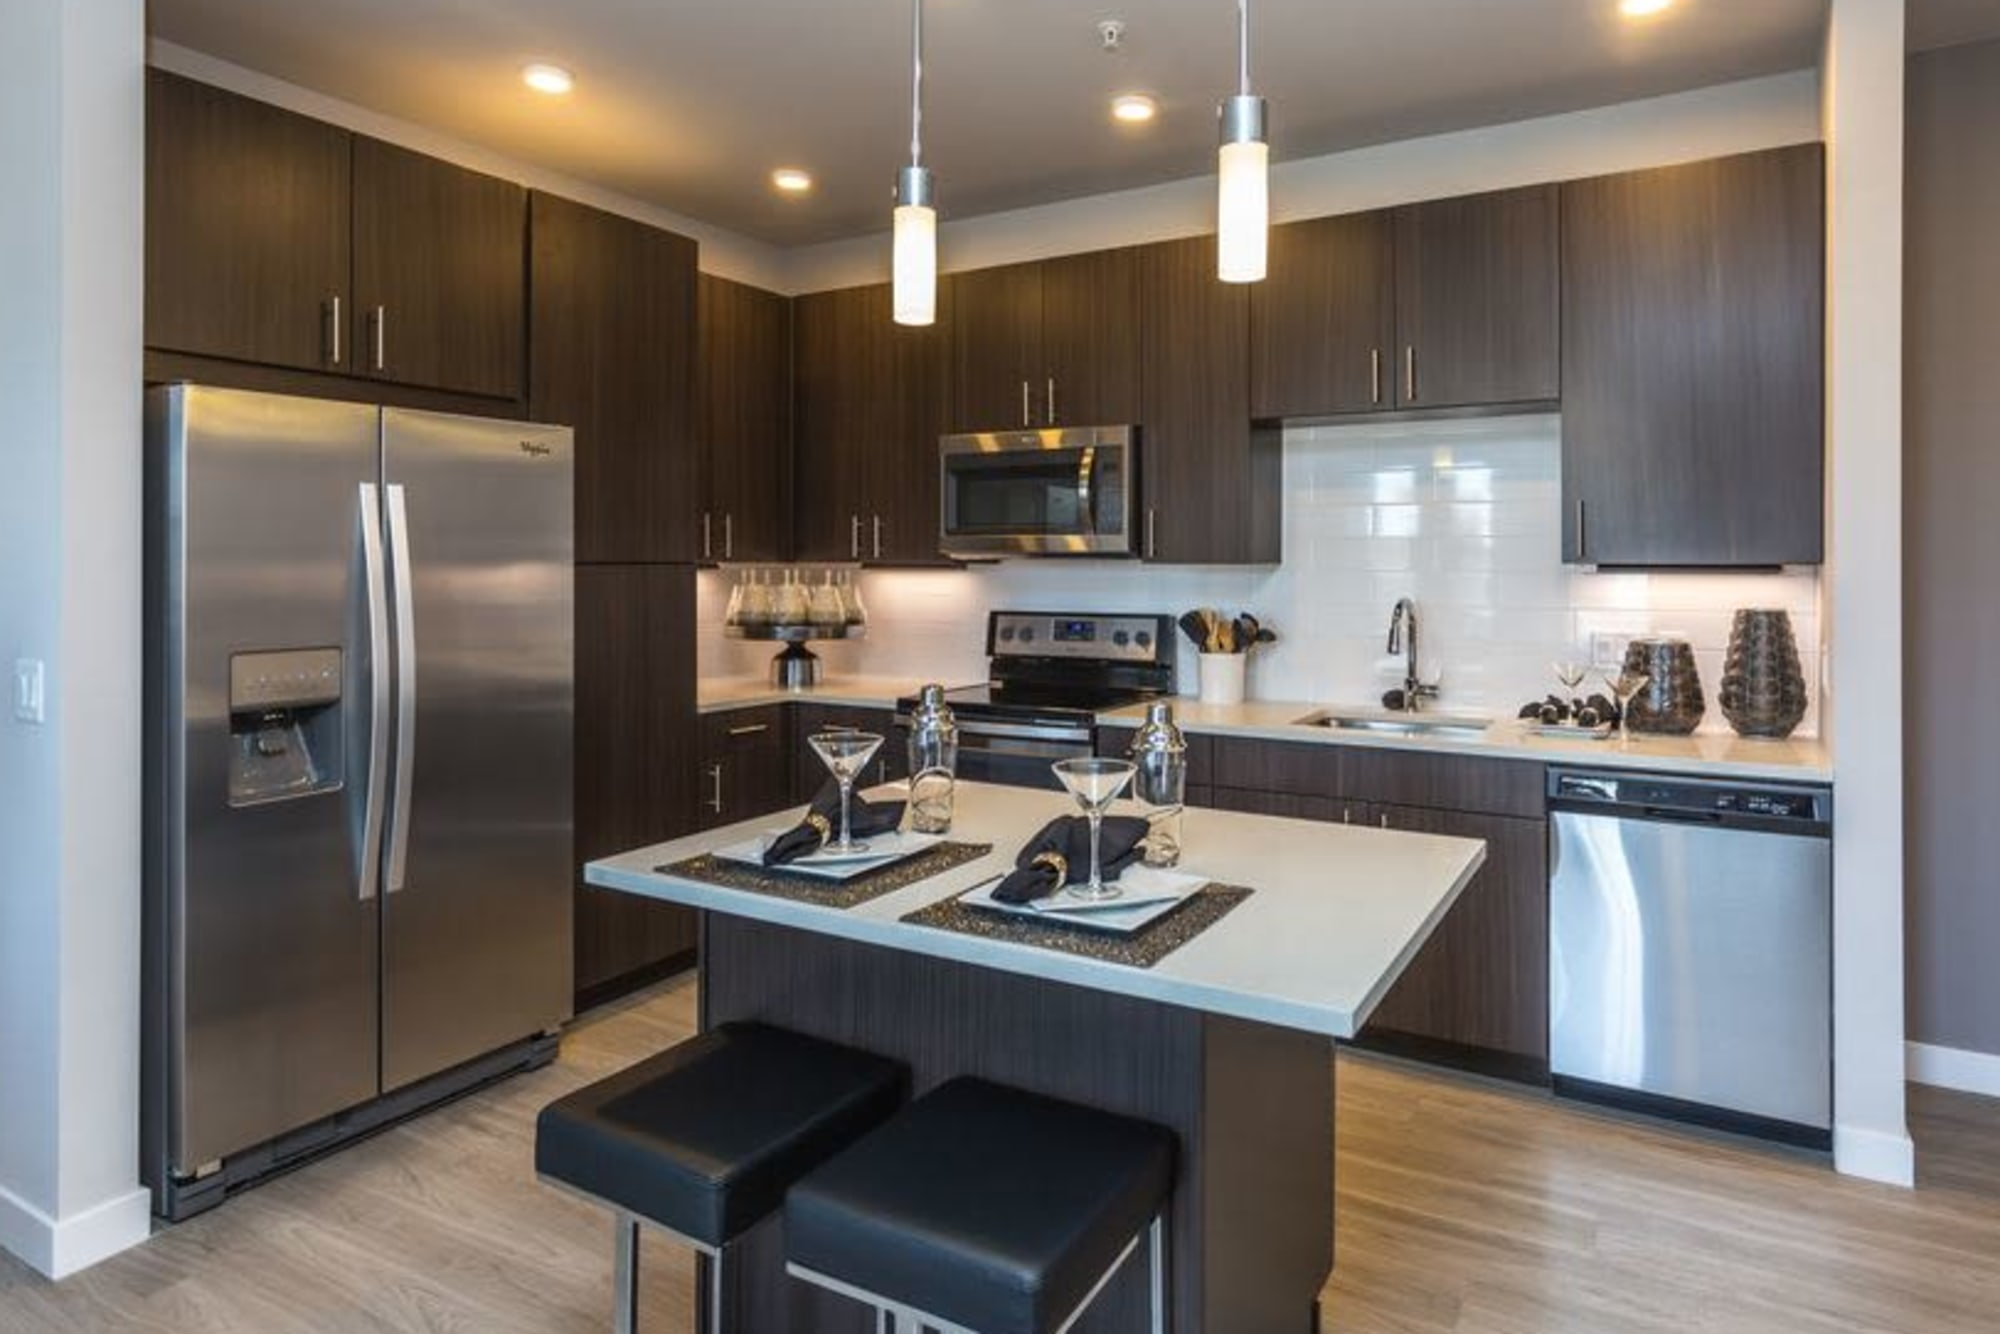 Modern kitchen with stainless appliances and dark wood cabinetry at Strata Apartments in Denver, Colorado